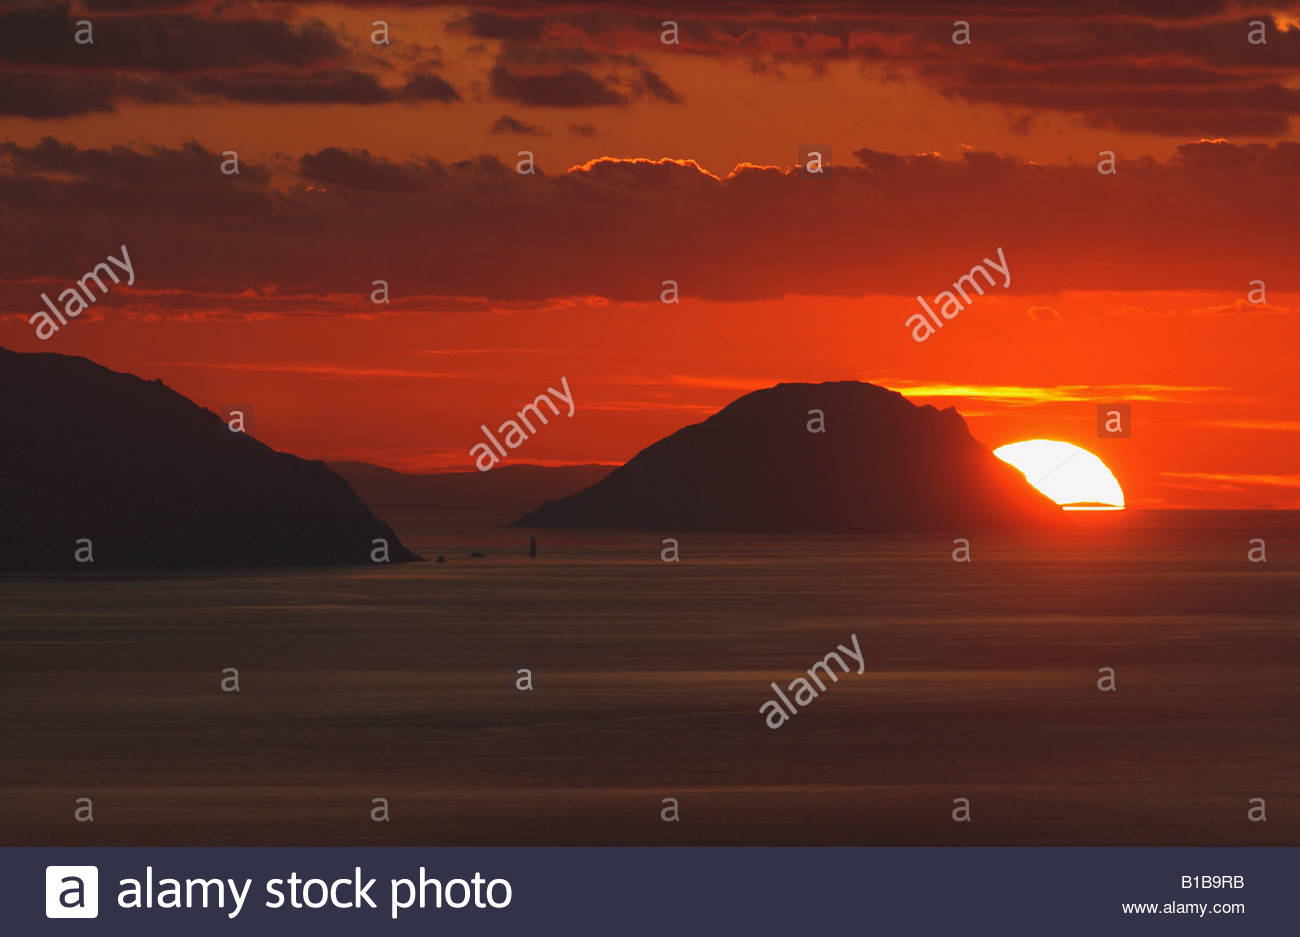 Italy, Alicudi Islands, Sunset - Stock Image